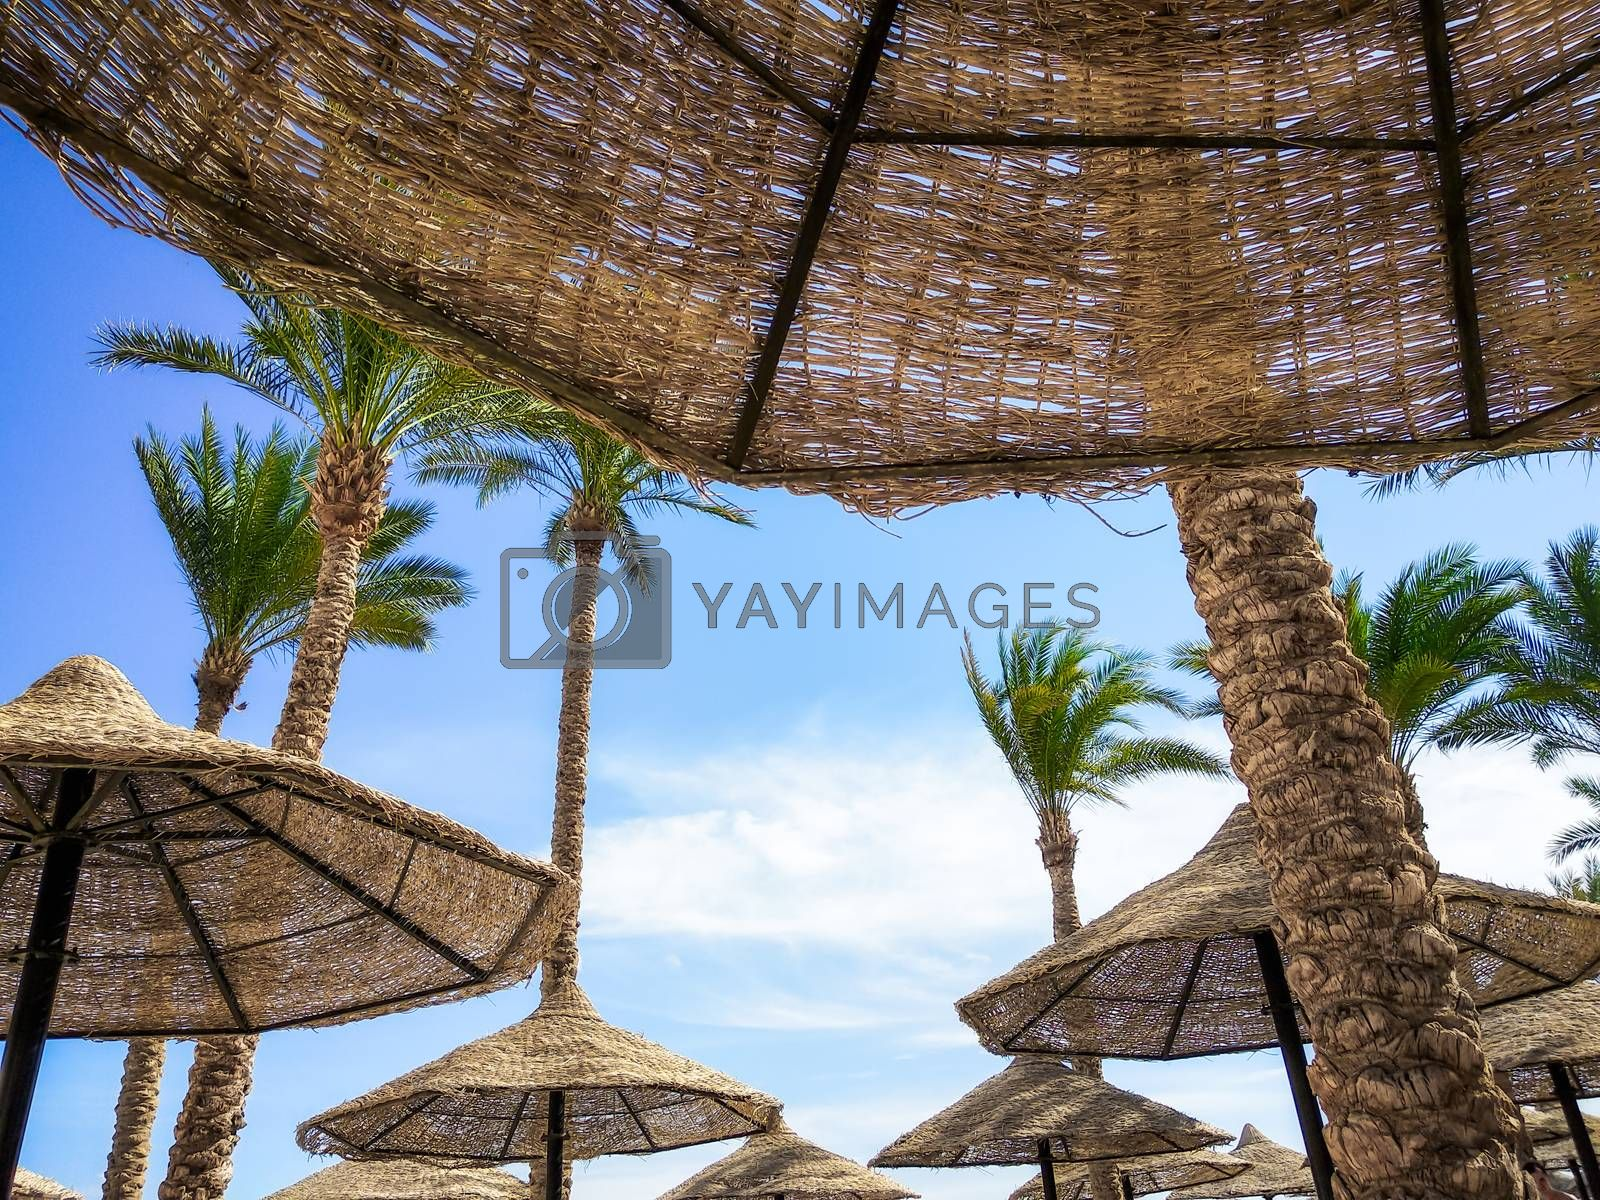 tropical background without people with palm trees and wooden umbrellas in Egypt Sharm El Sheikh